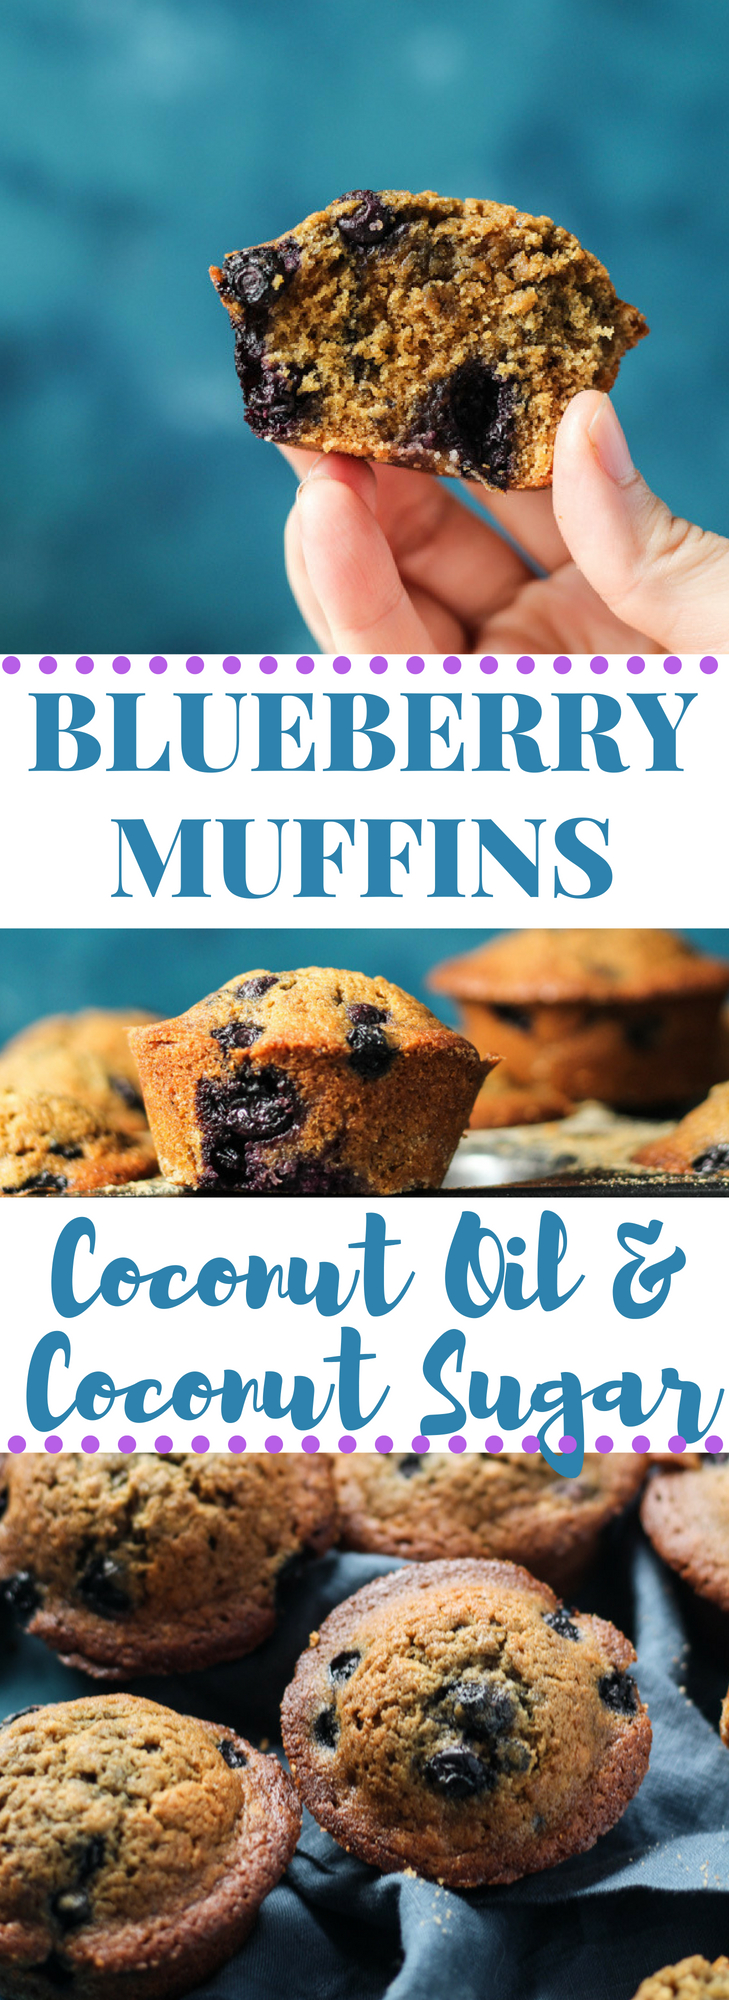 Blueberry muffins with coconut oil and coconut sugar pinterest